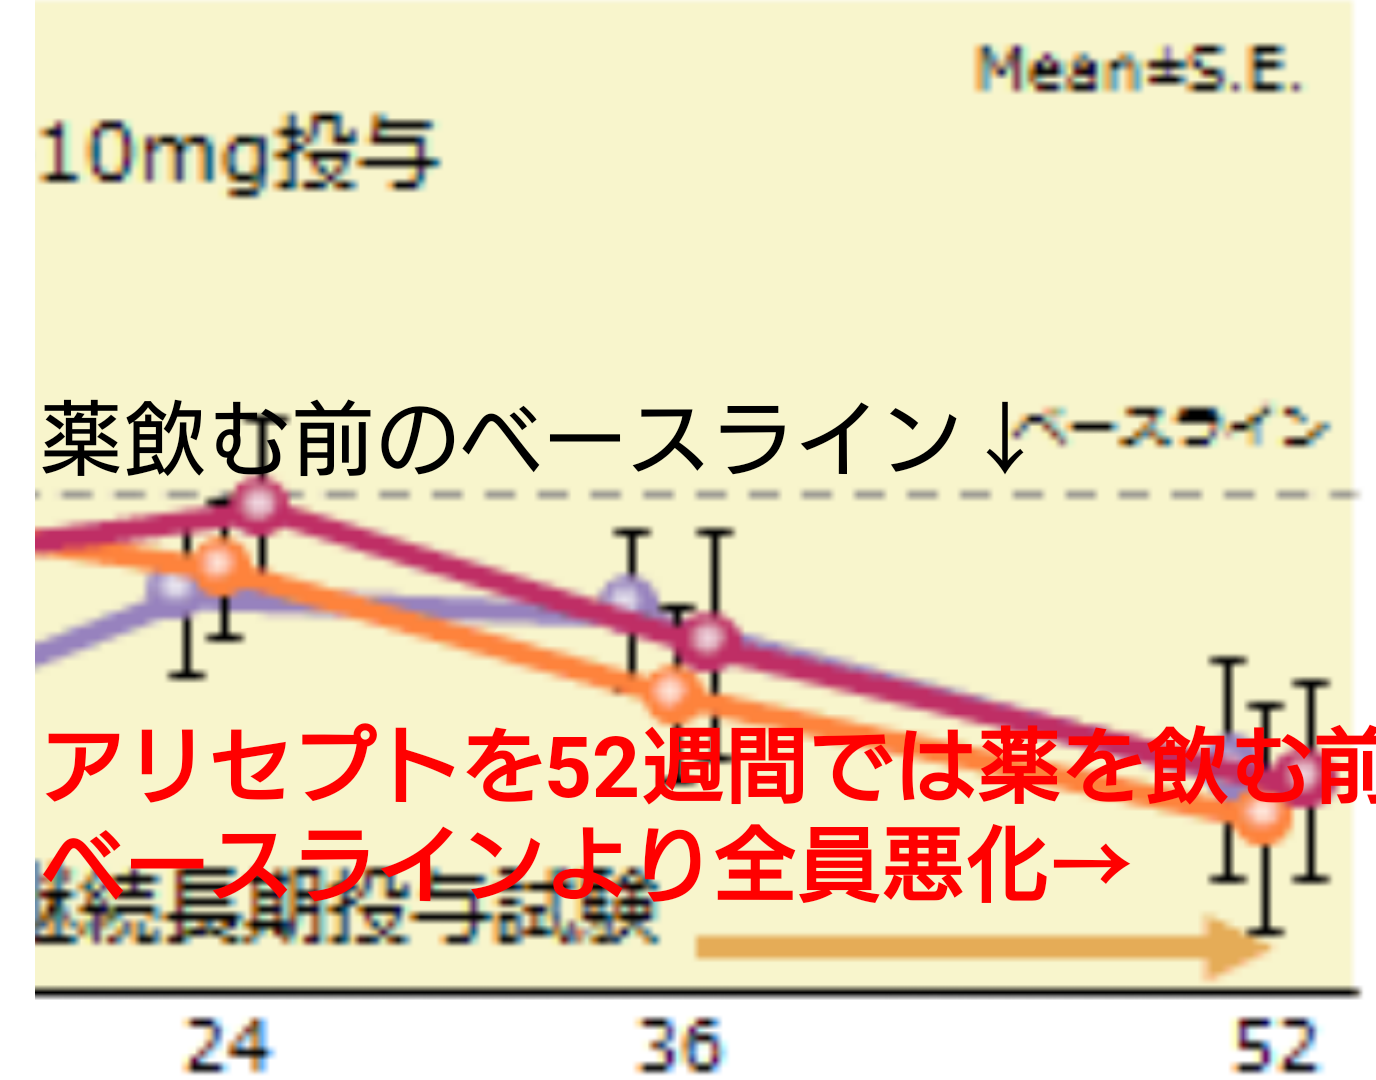 20190807121649298.png